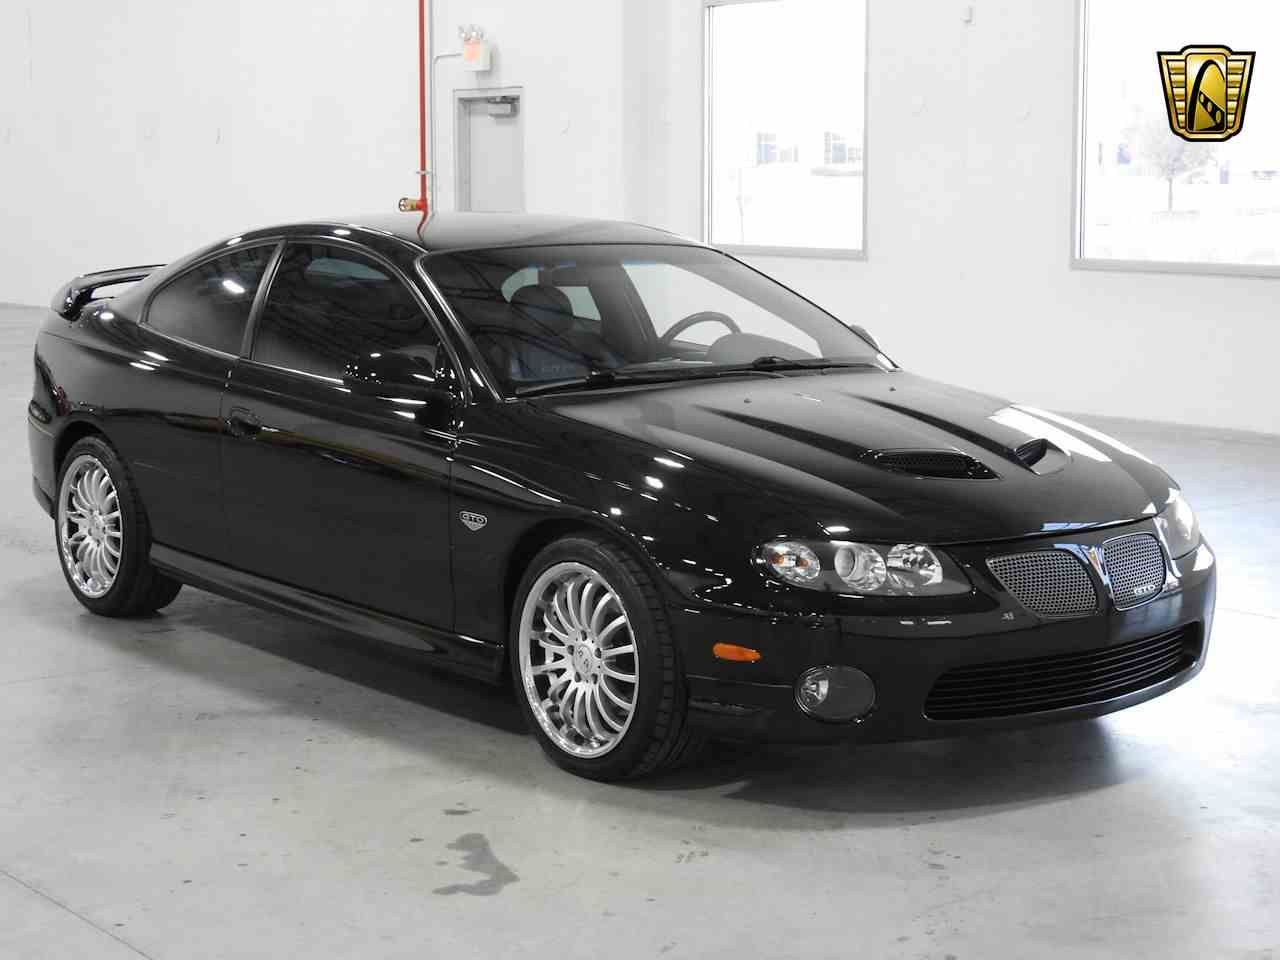 Large Picture of 2006 Pontiac GTO located in Wisconsin - $23,595.00 Offered by Gateway Classic Cars - Milwaukee - ME4U